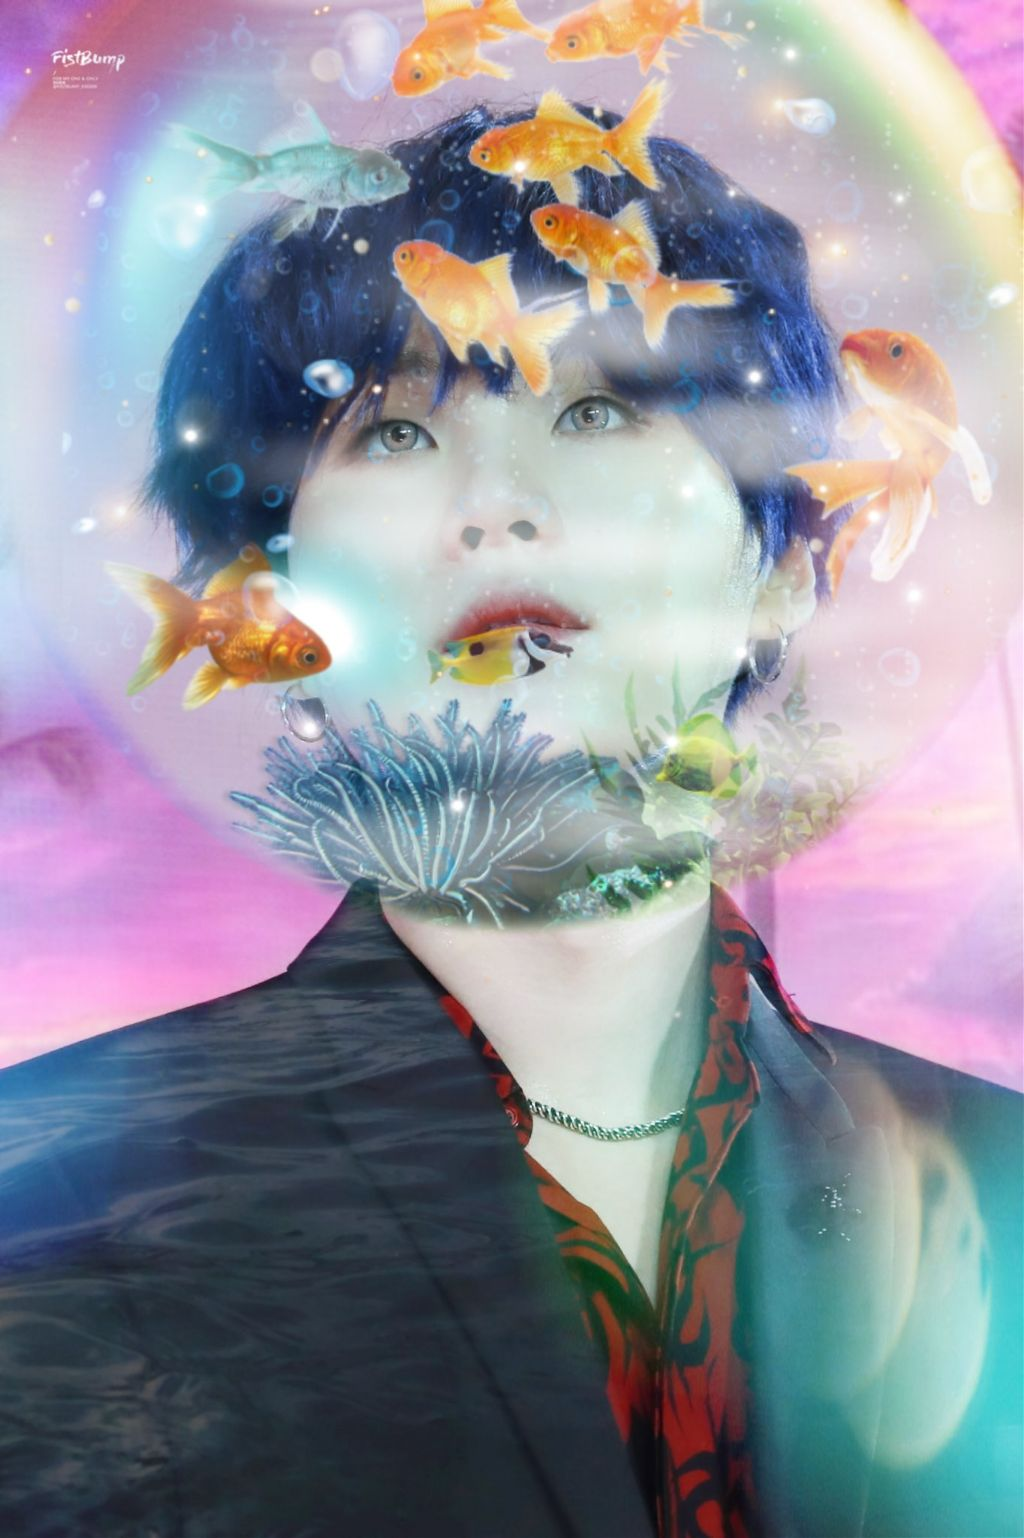 ocean yoongi #freetoedit  #kpop #kpopedit #minyoongi #minyoongiedit #suga #sugaedit #edit #ocean #oceanedit